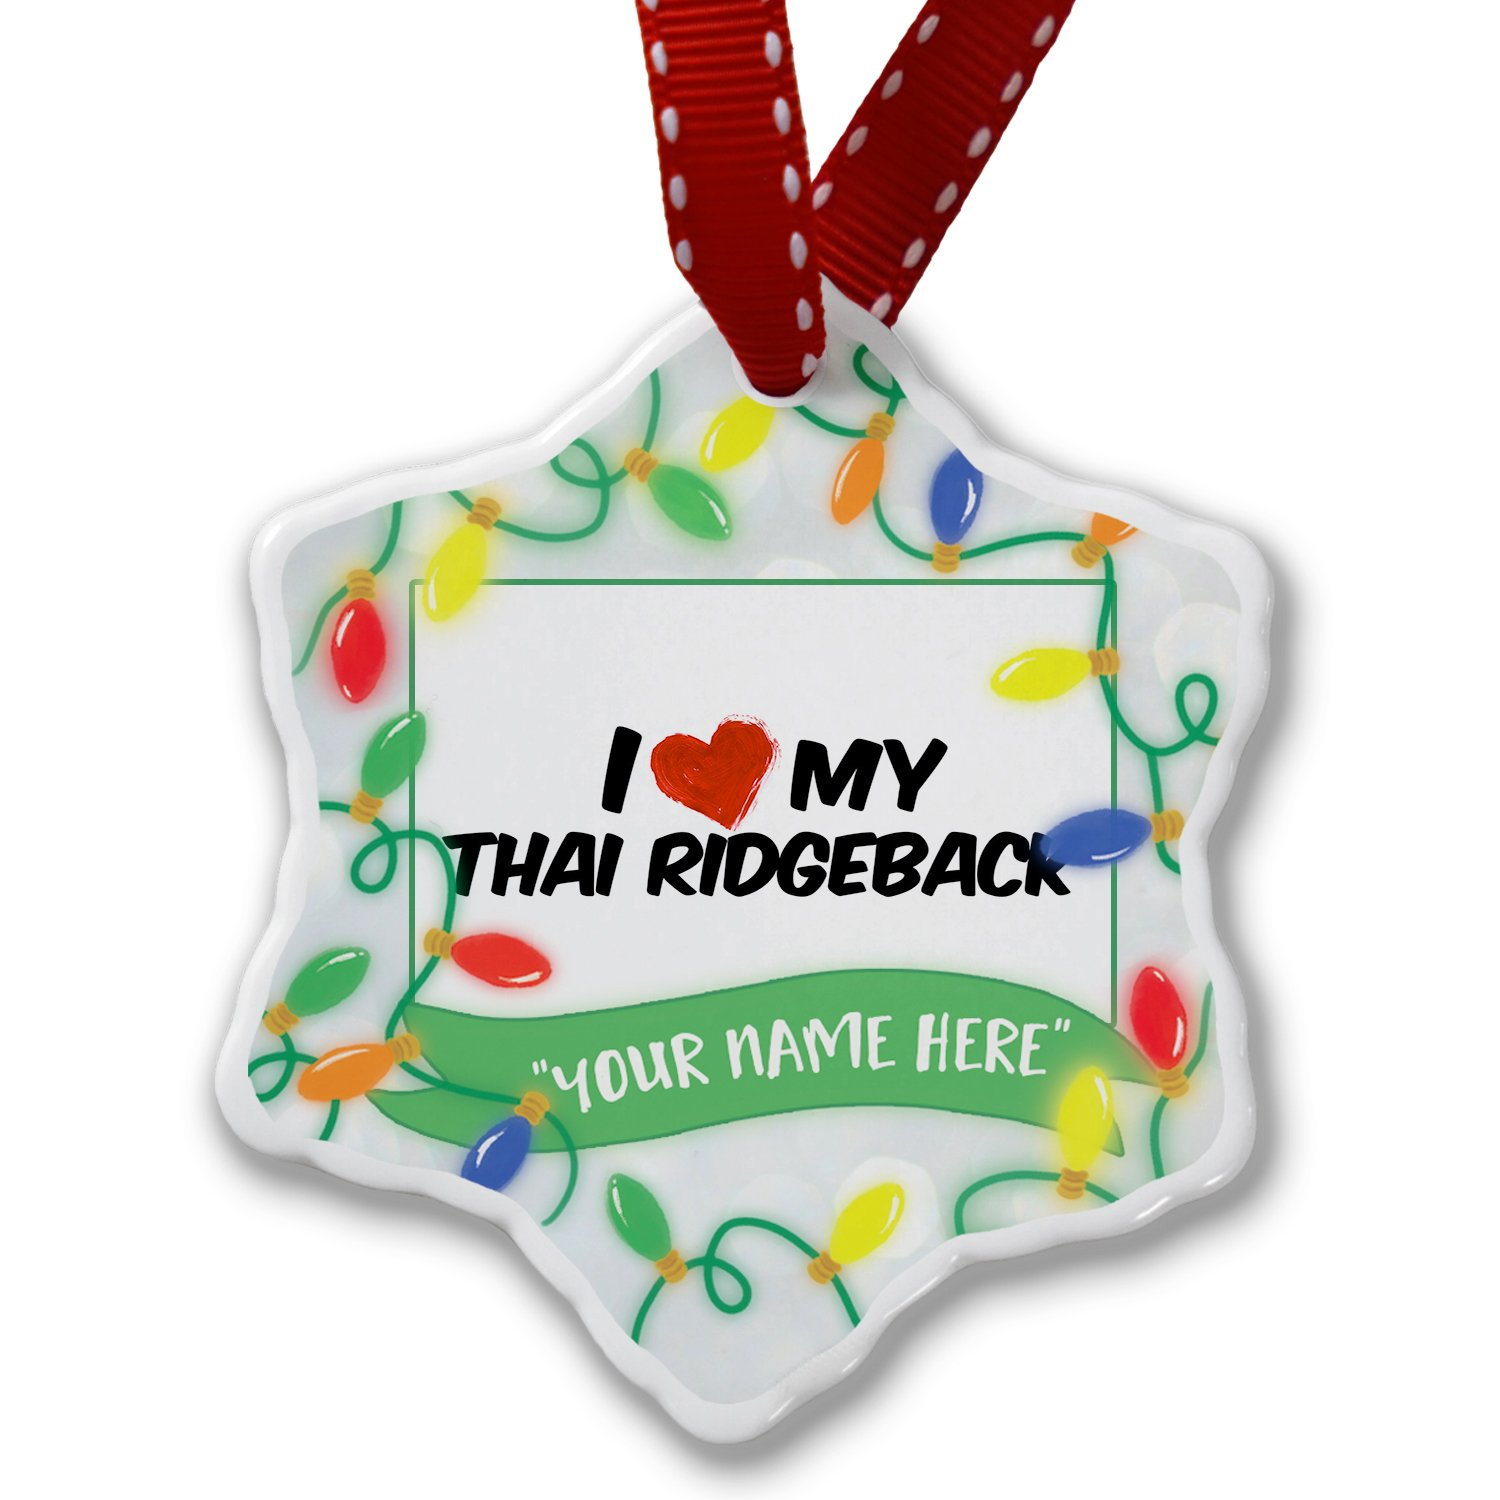 Personalized Name Christmas Ornament, I Love my Thai Ridgeback Dog from Thailand NEONBLOND by NEONBLOND